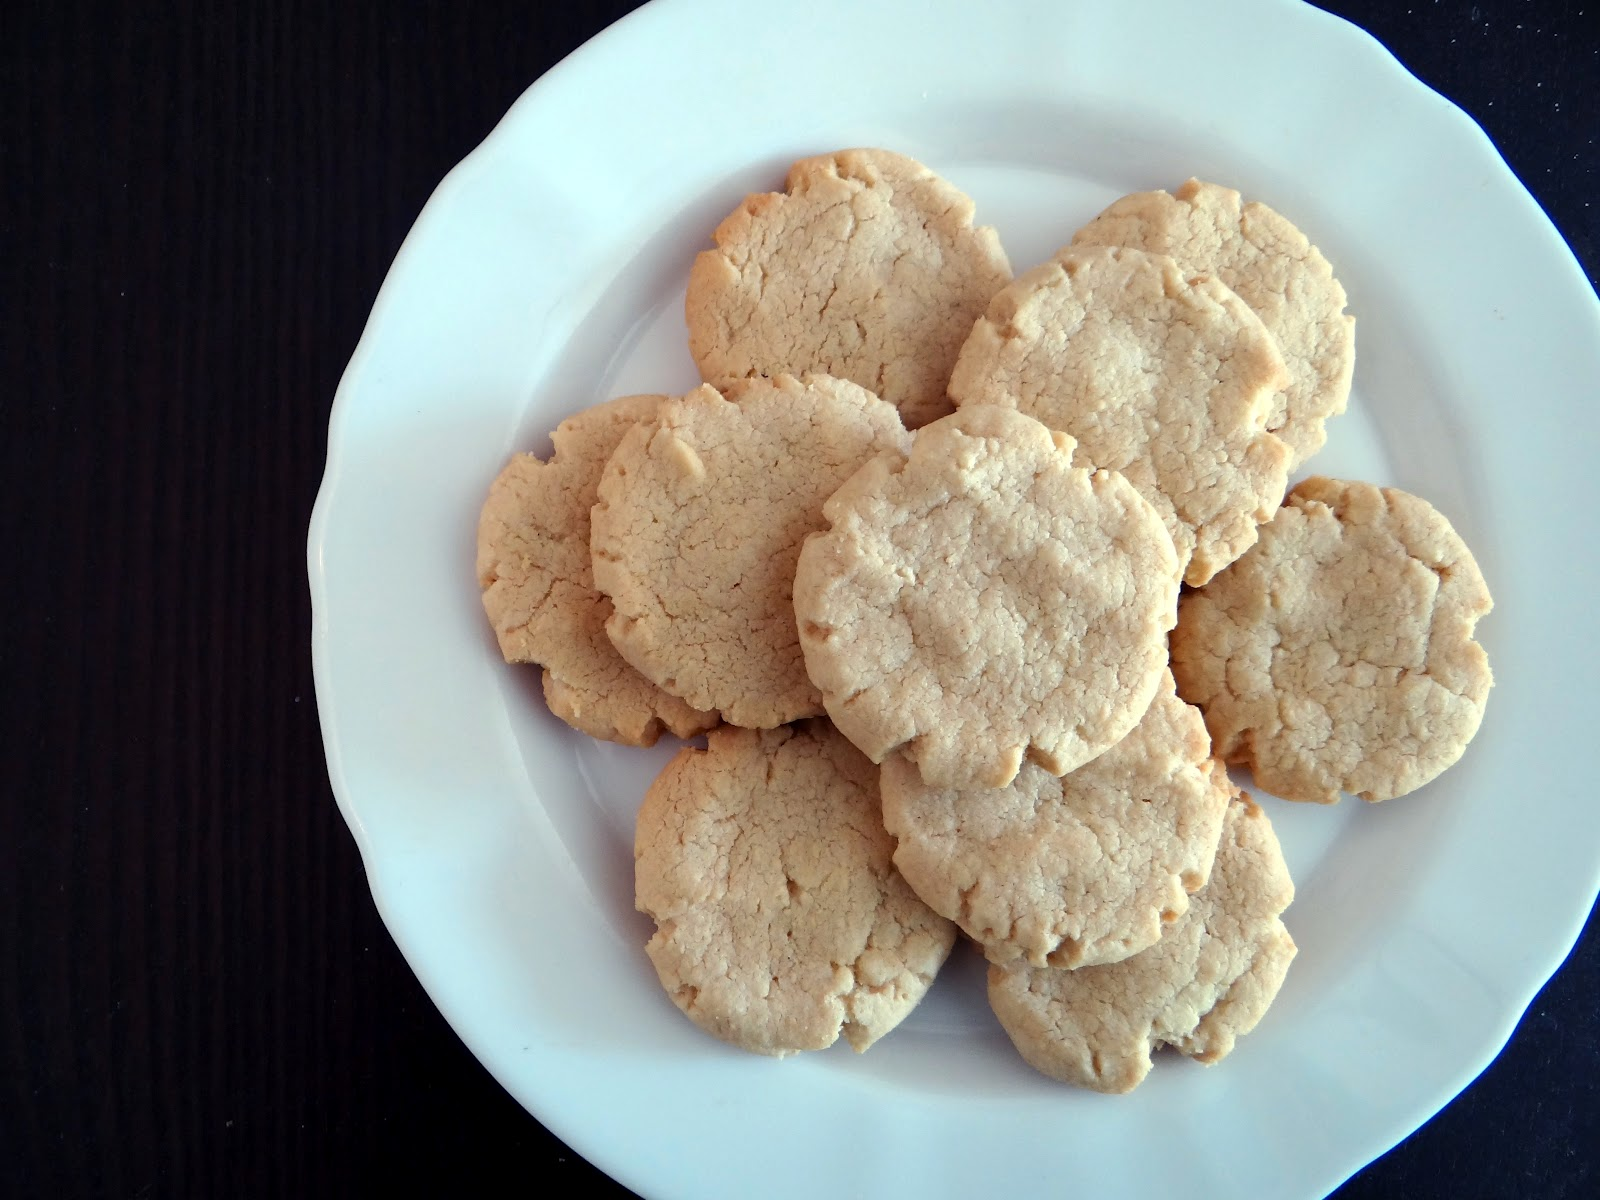 Words & Cake | Bake, Eat, Write, Read: Tahini & Almond Cookies